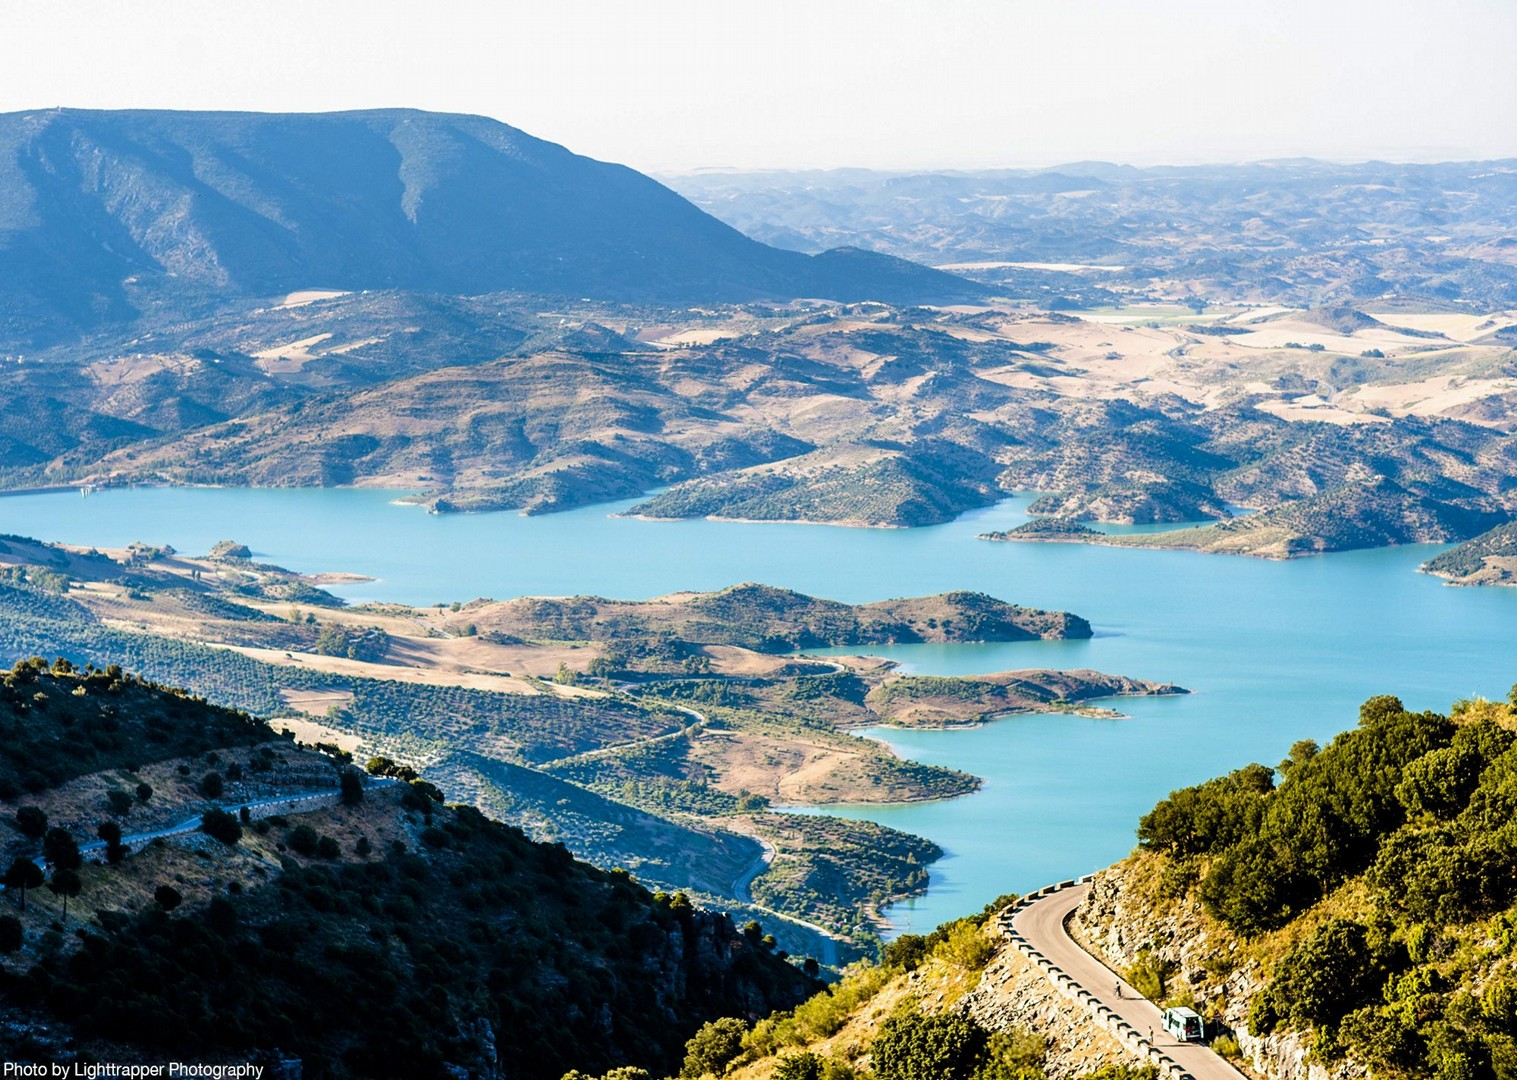 mountains-roads-of-ronda-scenery-cycling-tour-spain.jpg - Southern Spain - Roads of Ronda - Guided Road Cycling Holiday - Road Cycling